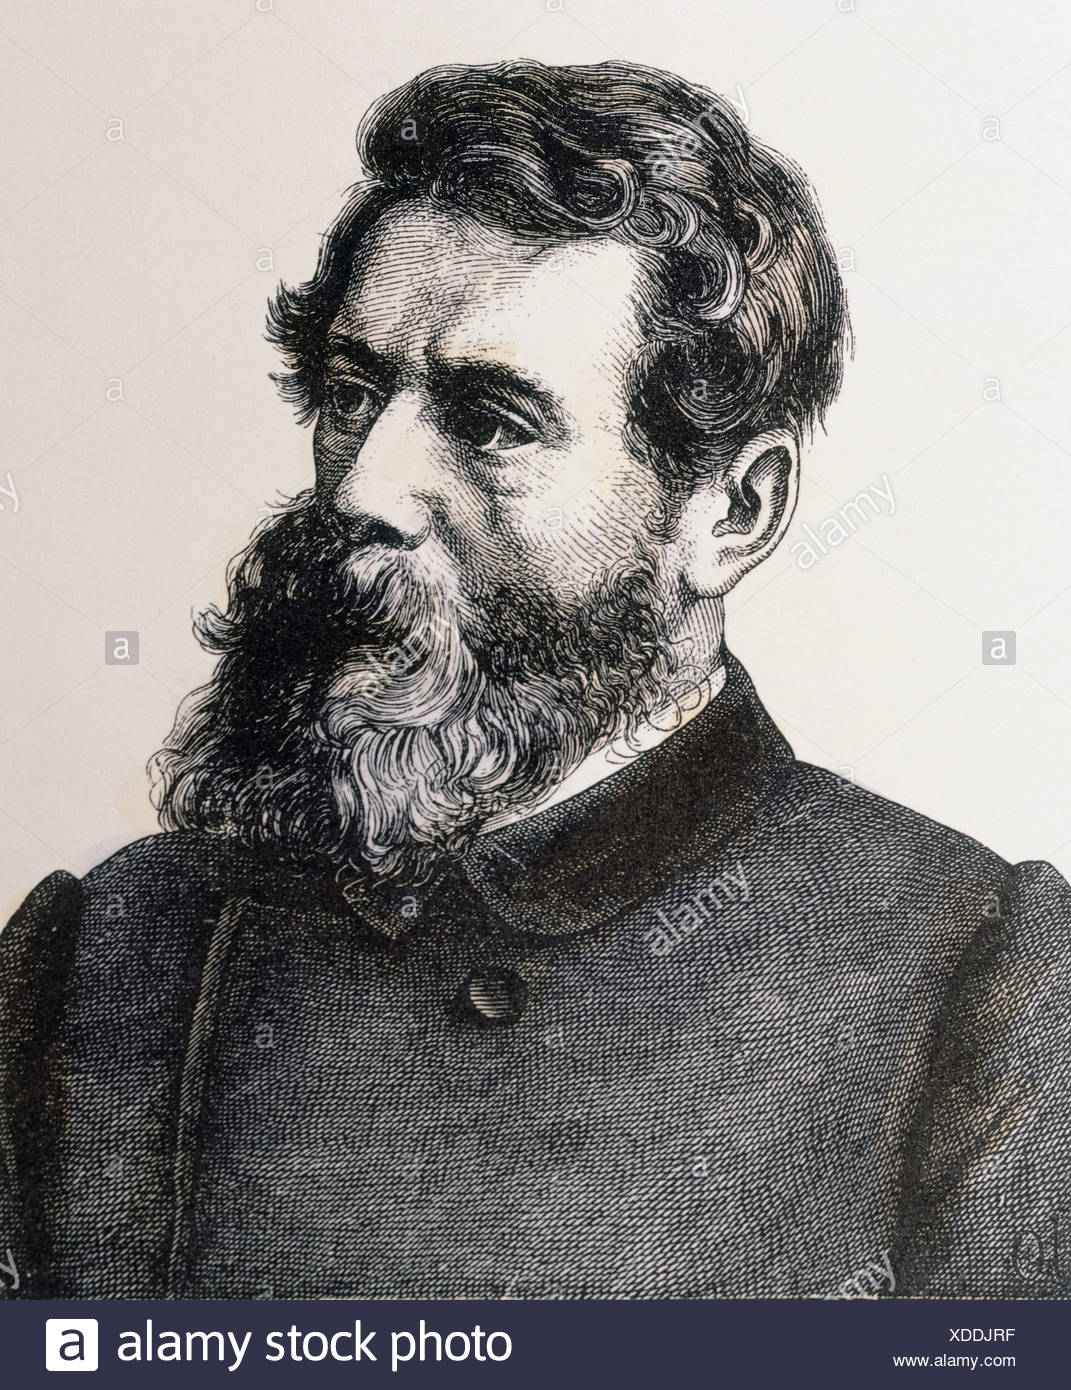 Feuerbach, Ludwig Andreas, 28.7.1804 - 13.9.1872, German philosopher, portrait, wood engraving by Hugo Buerkner, Dresden, 1854, private collection, , Additional-Rights-Clearances-NA - Stock Image